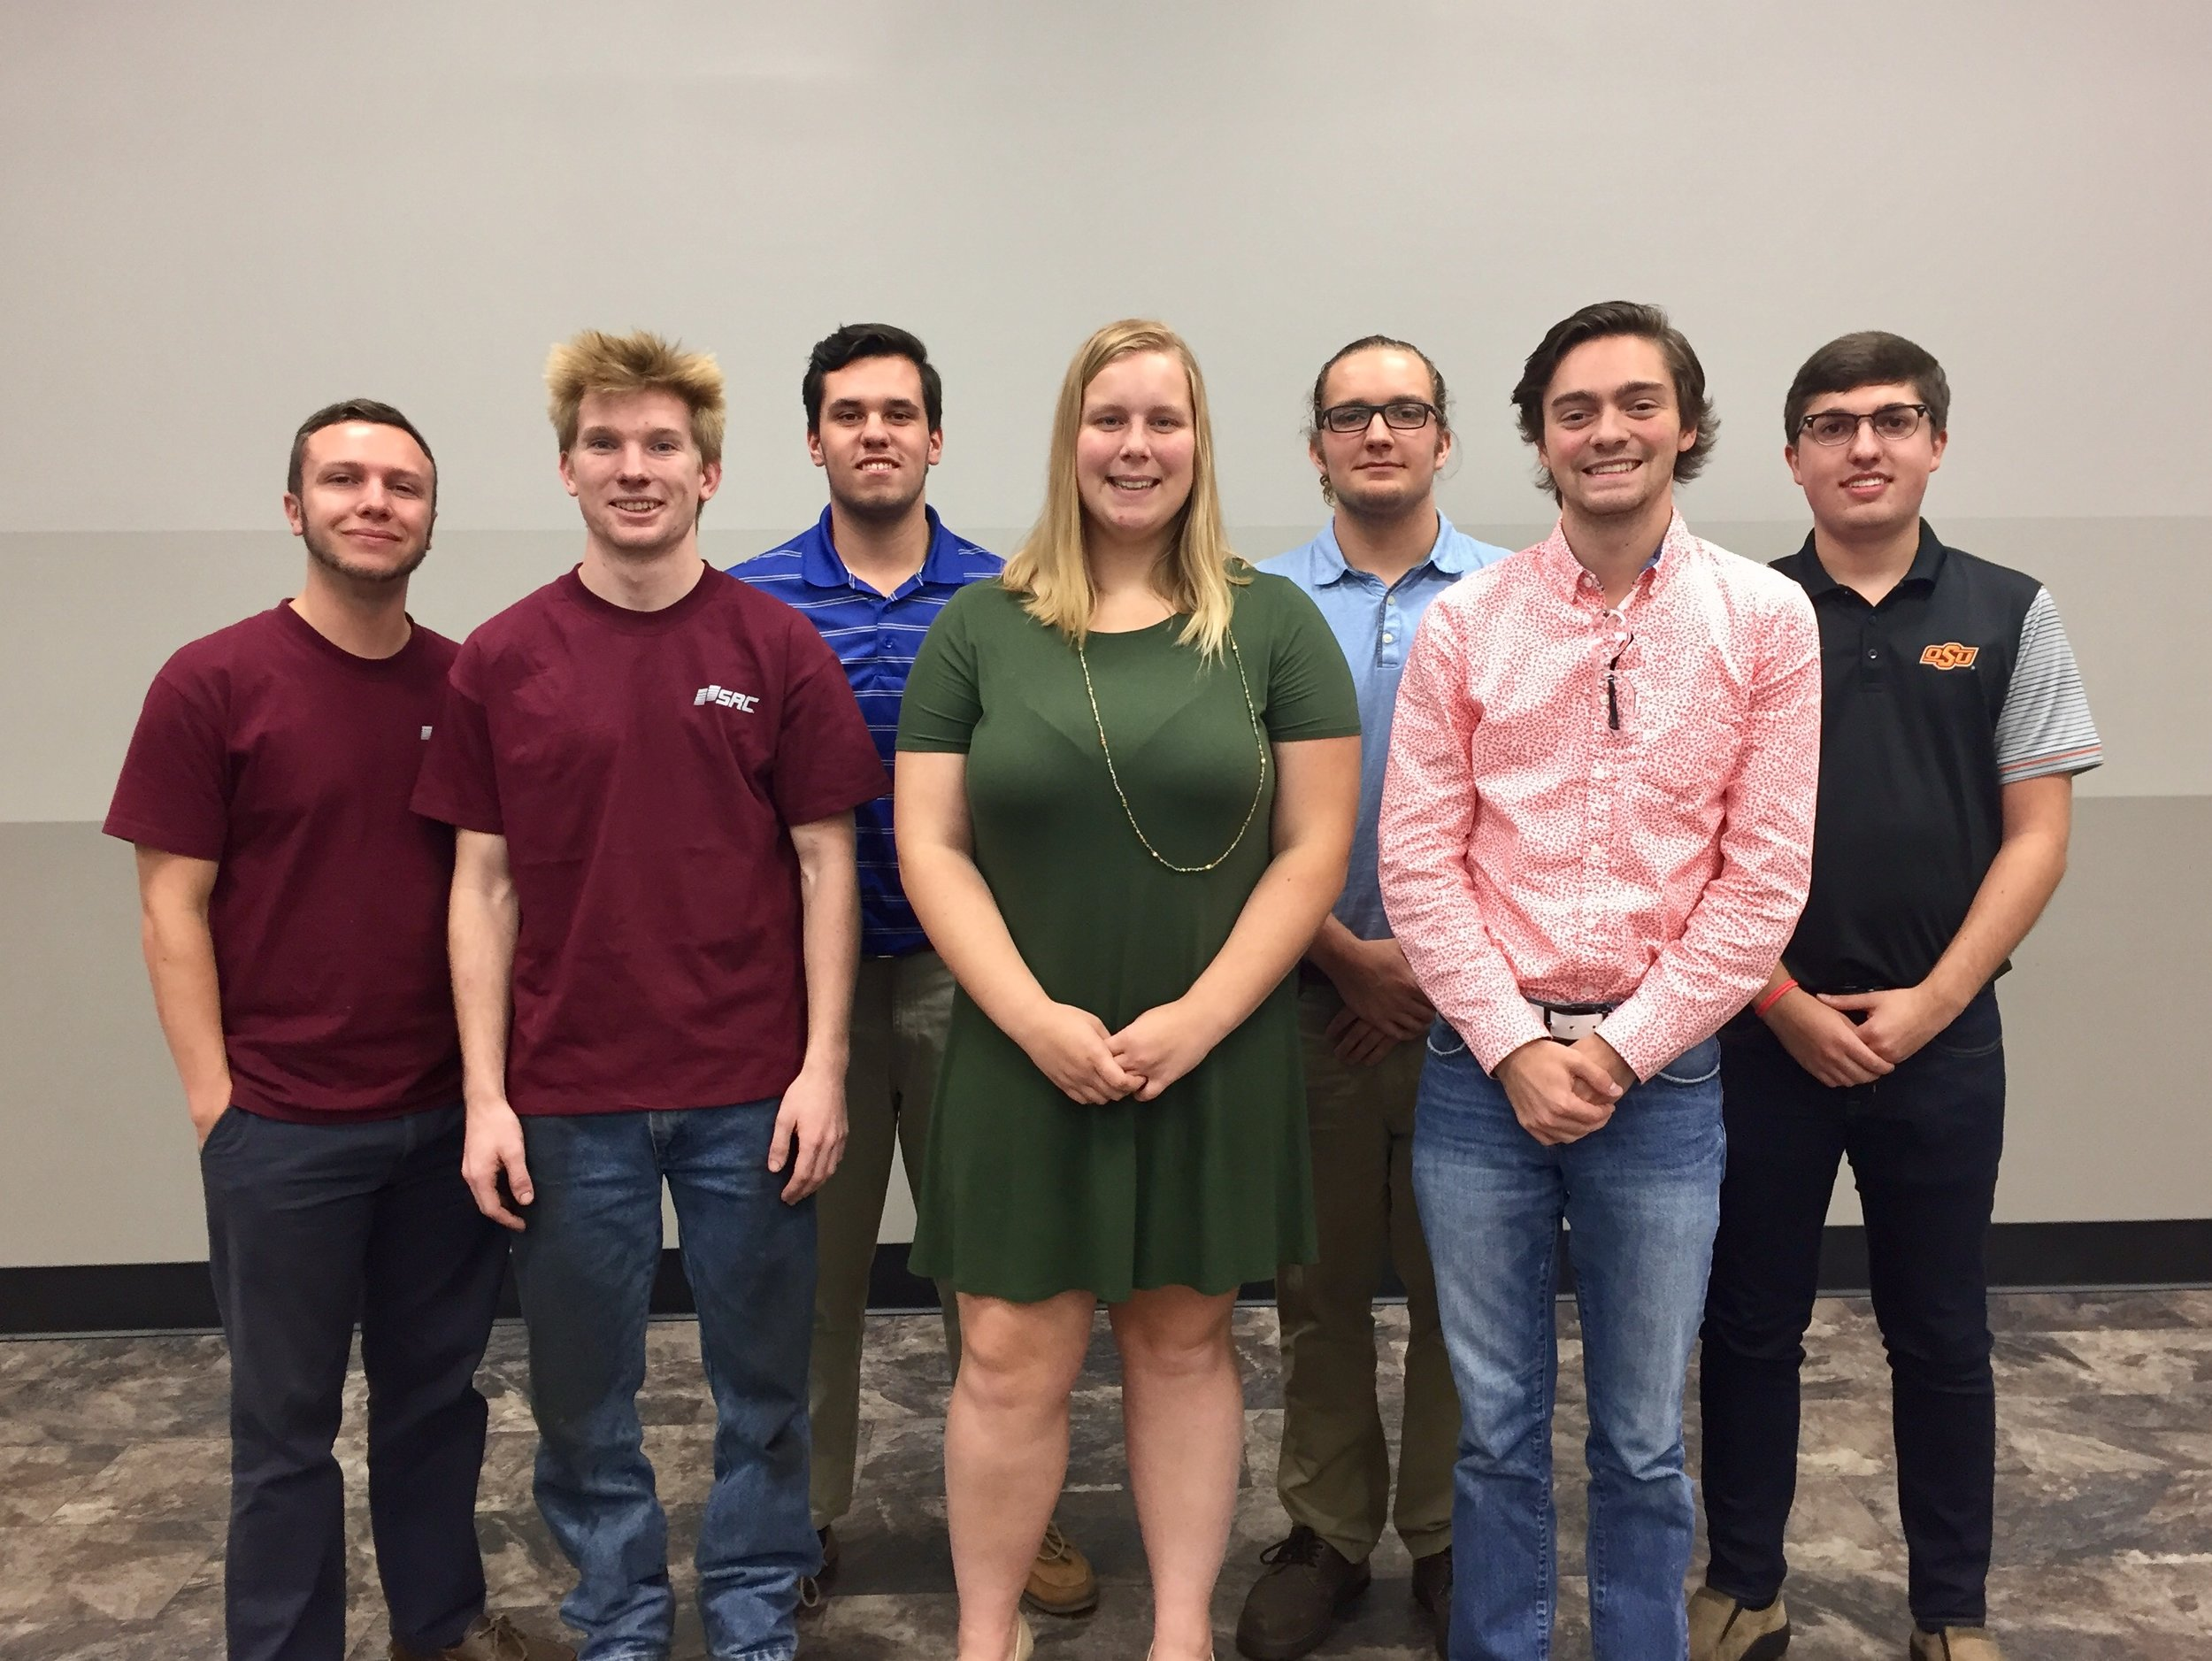 Logan Kunkel (back row; left) and Westin Easley (back row; middle), along with the fellow interns at Springfield Remanufacturing Corporation's Heavy Duty location, gave presentations about their summer projects to their superiors.